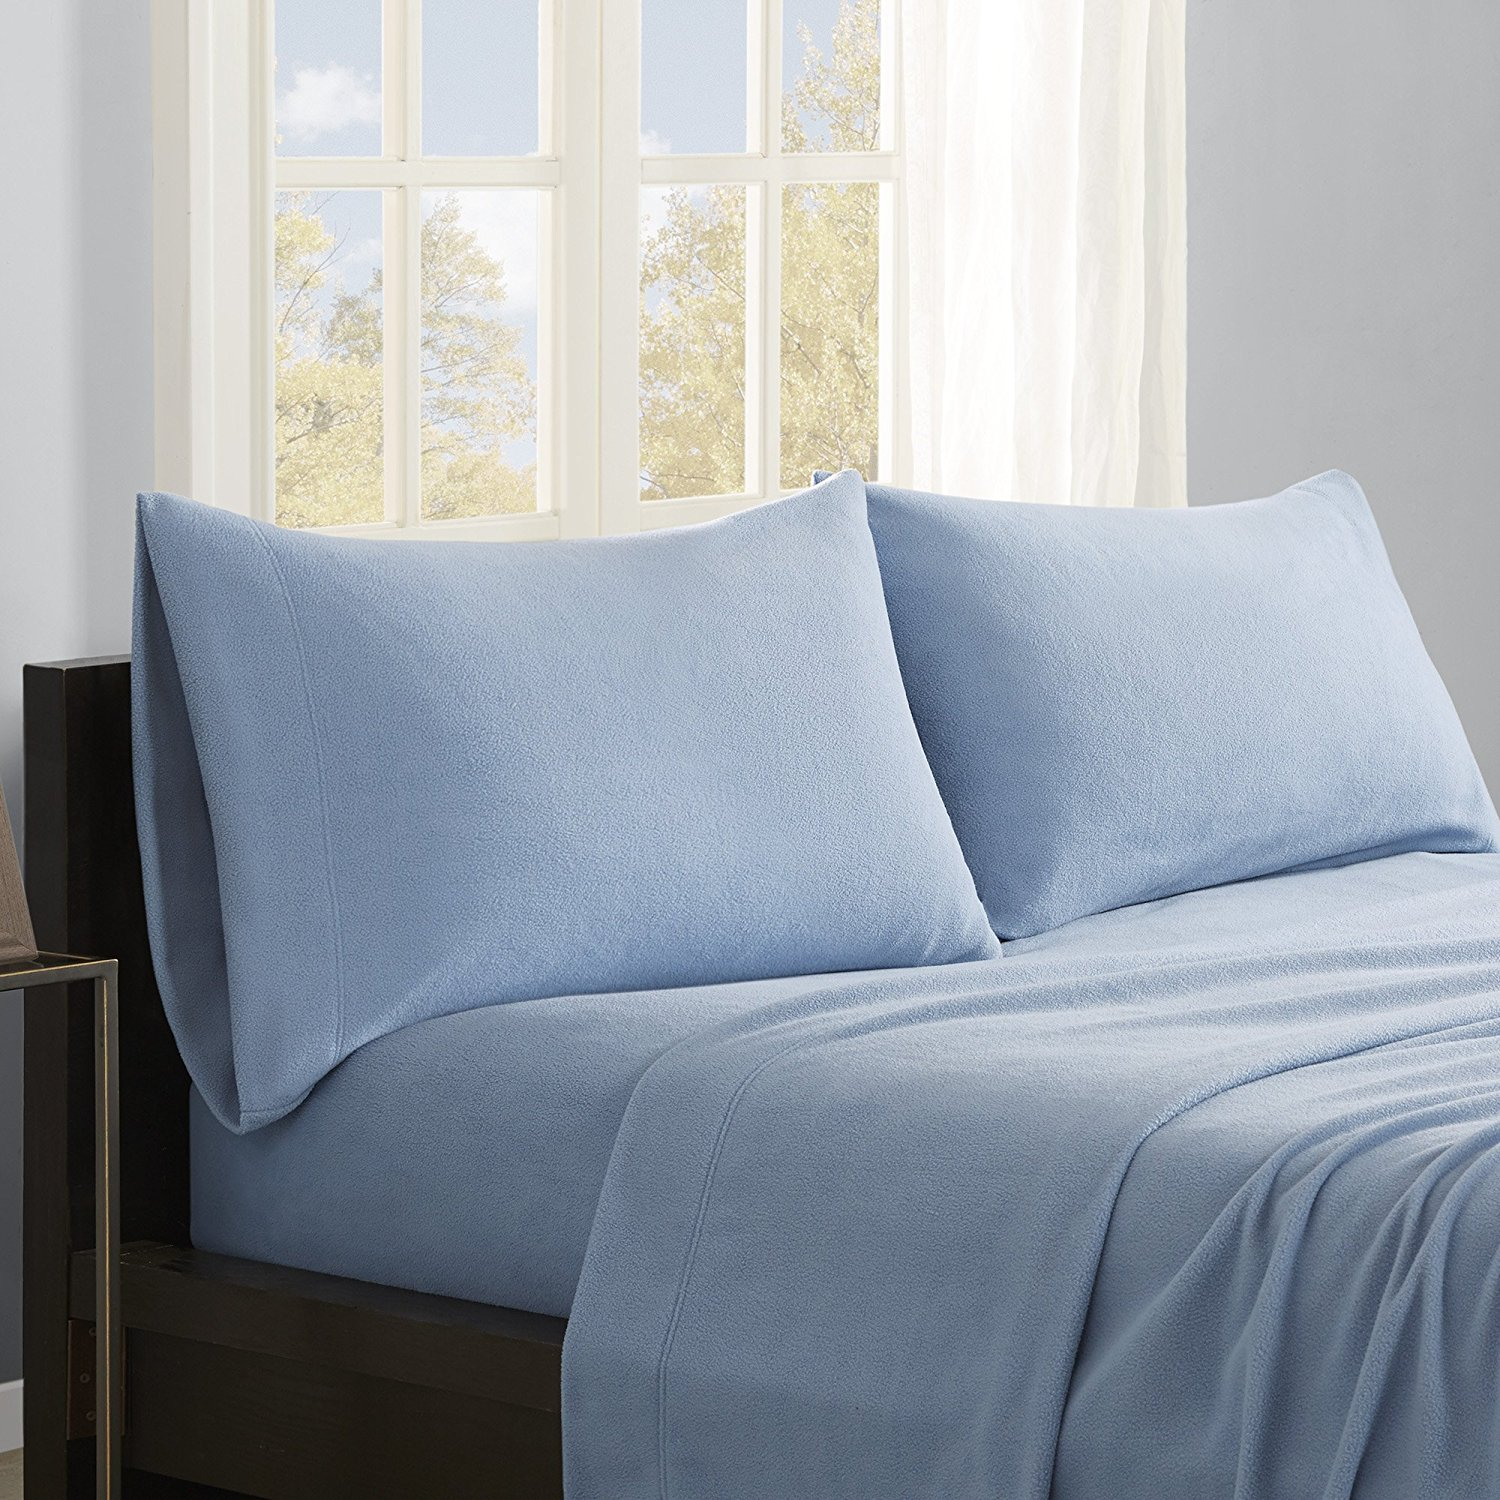 True North by Sleep Philosophy Micro Fleece Sheet Set, Queen, Blue